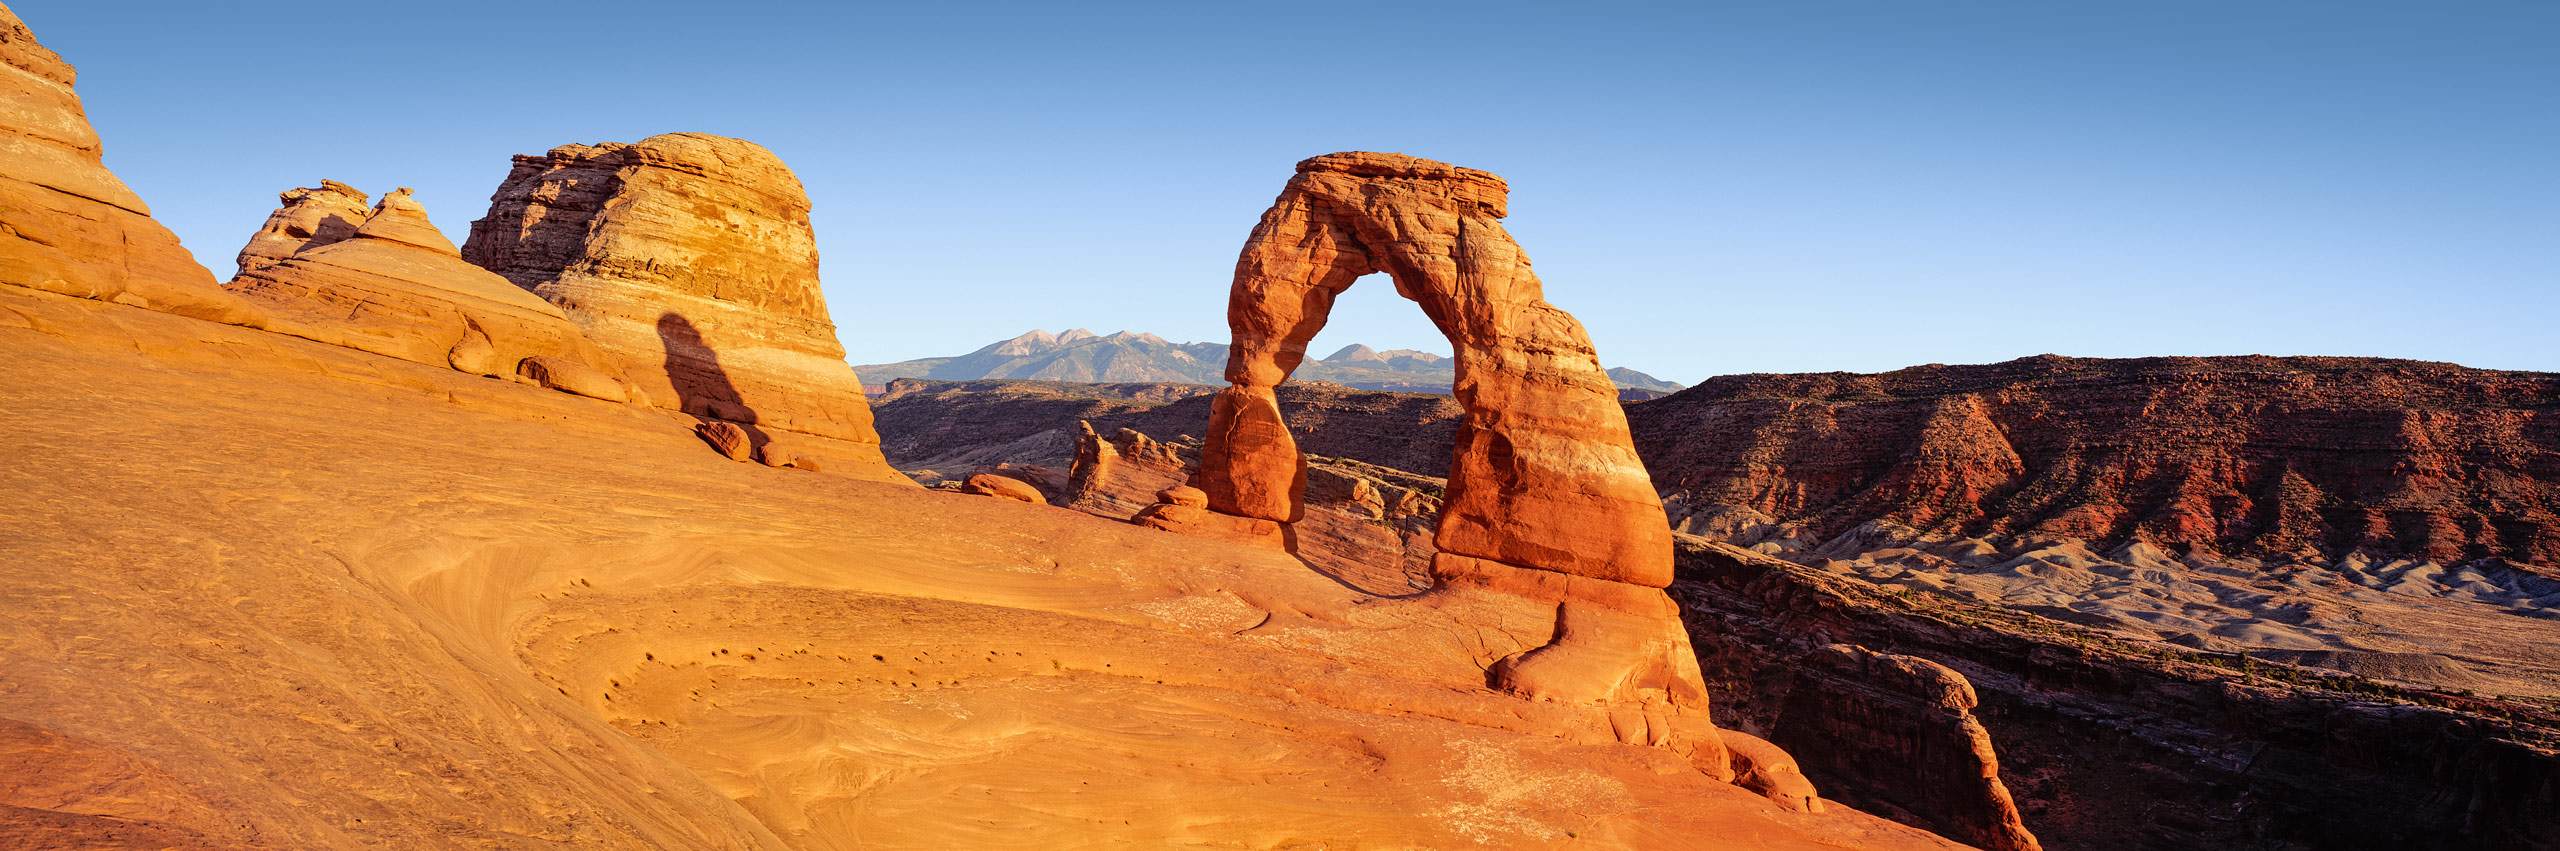 Delicate Arch, Arches National Park, Utah, USA day afternoon